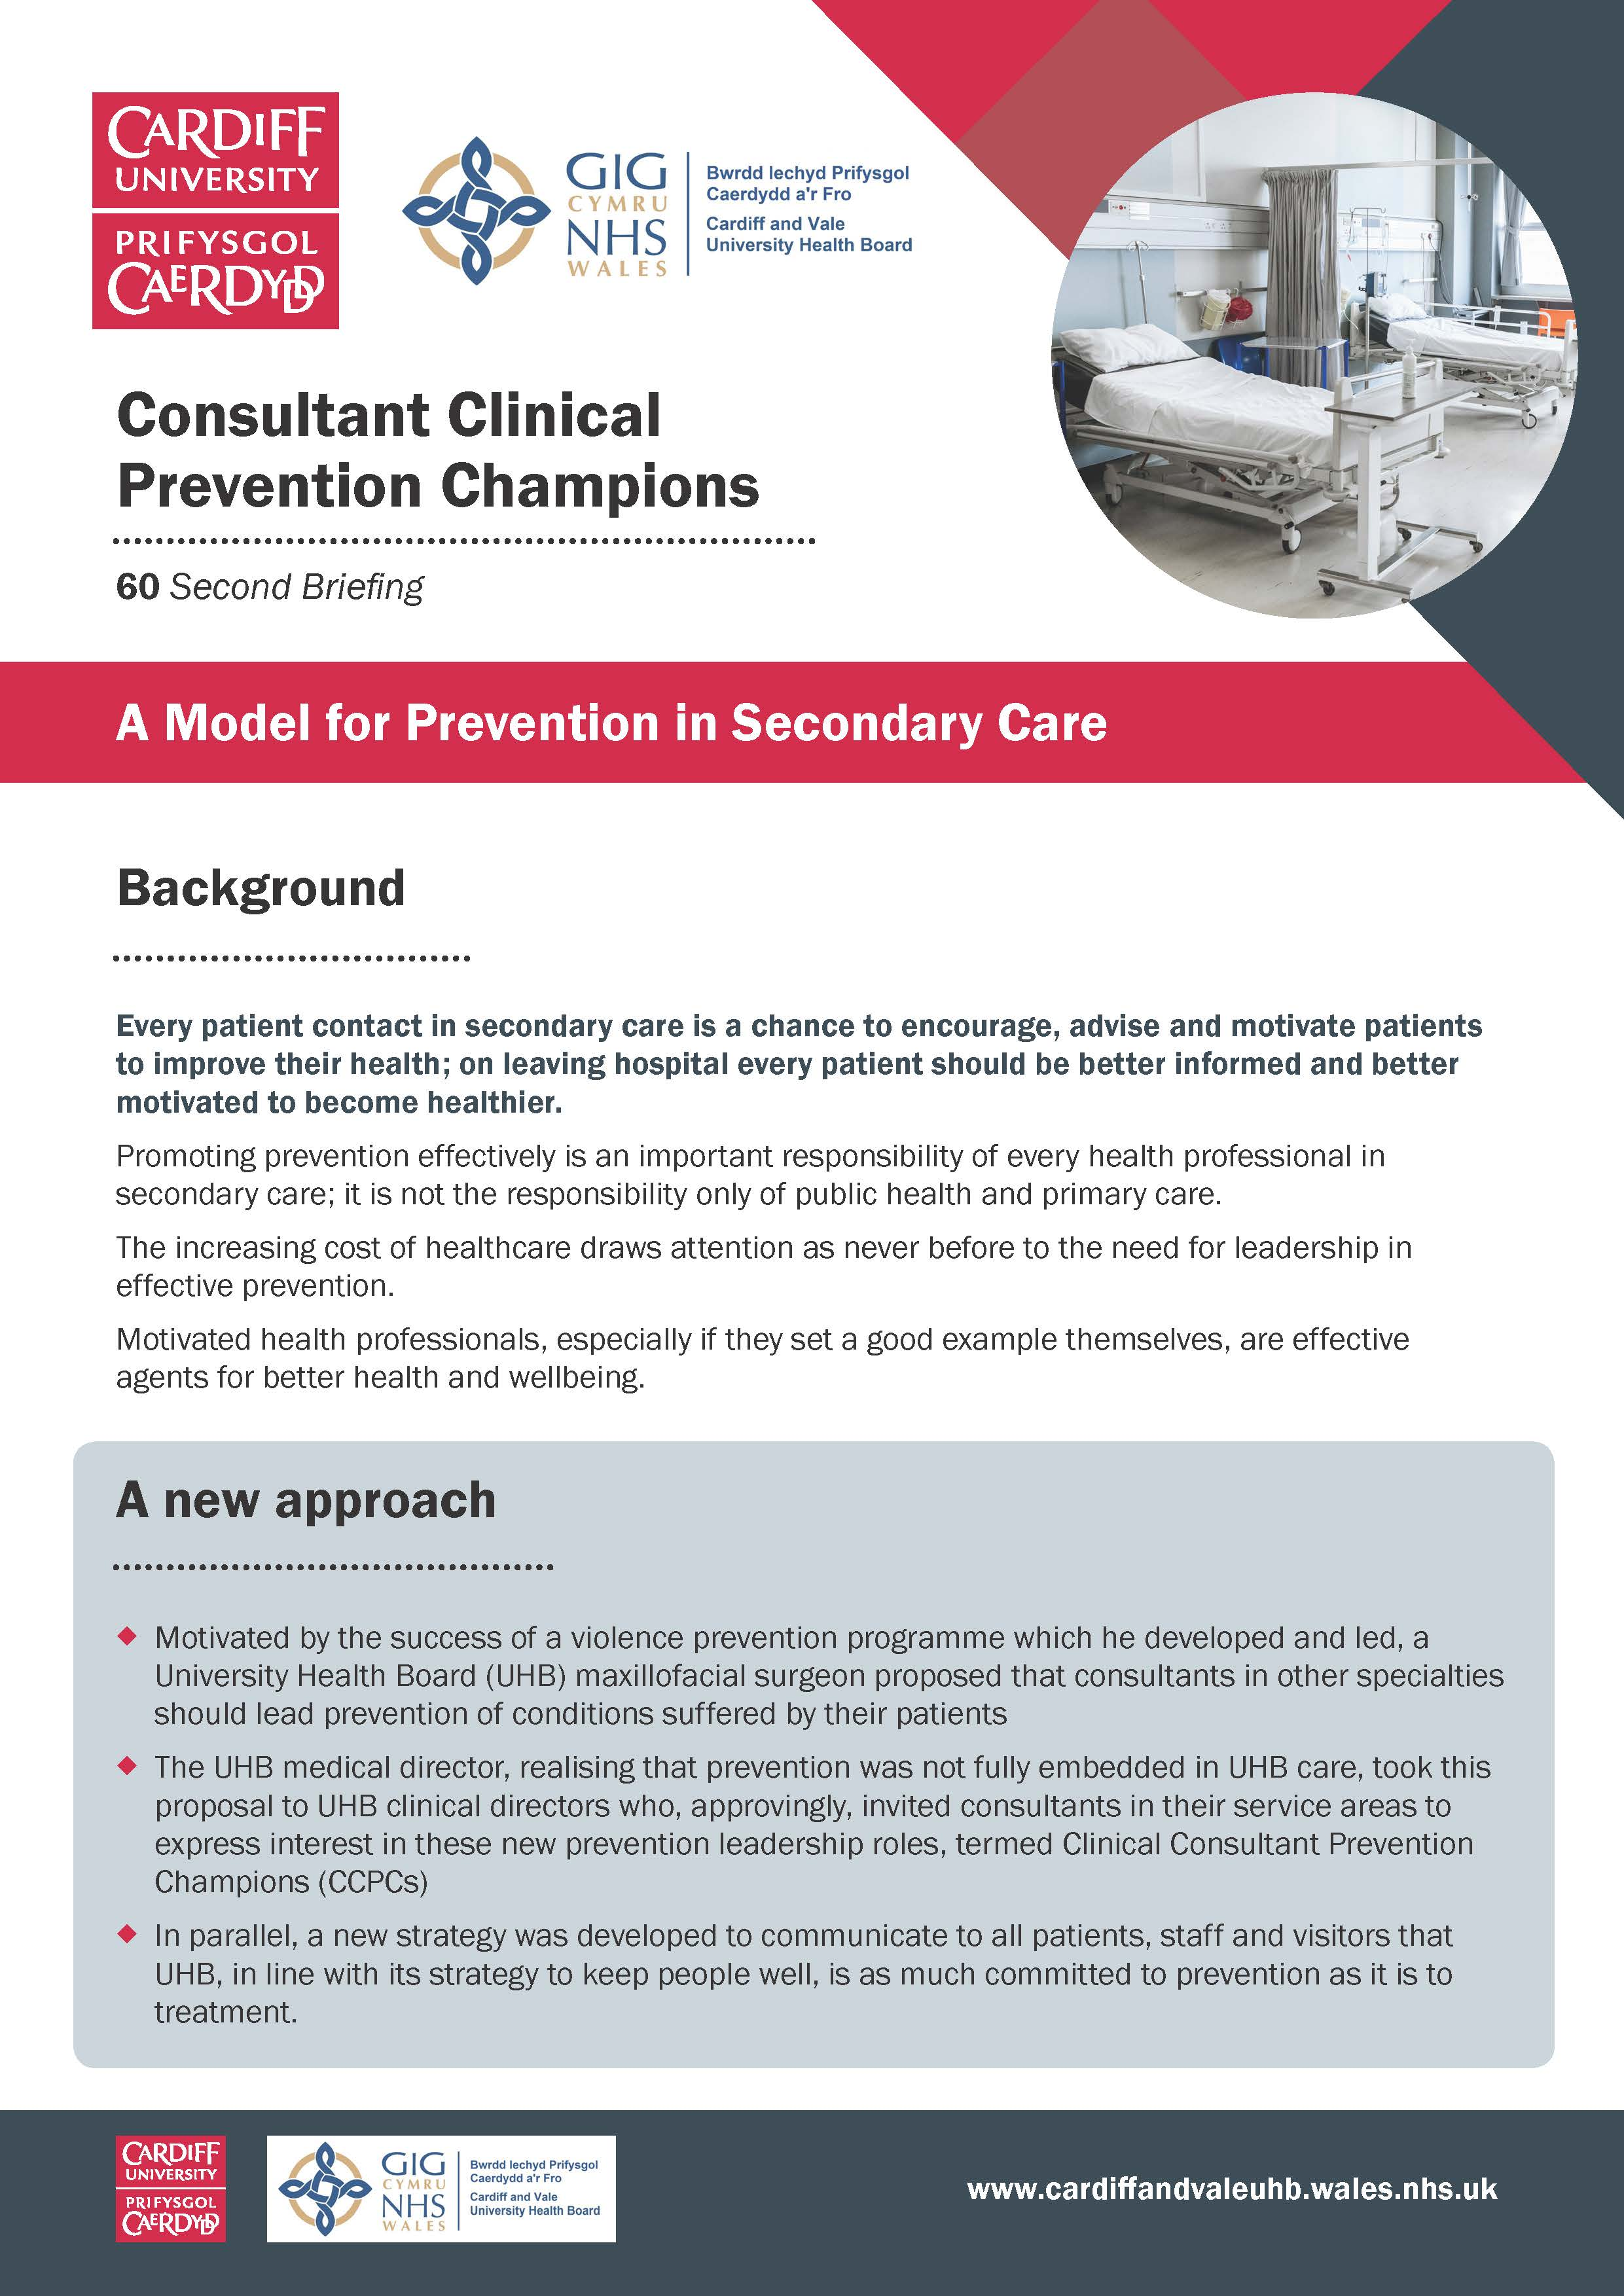 Consultant Clinical Prevention Champions 60 second briefing 2_Page_1.jpg